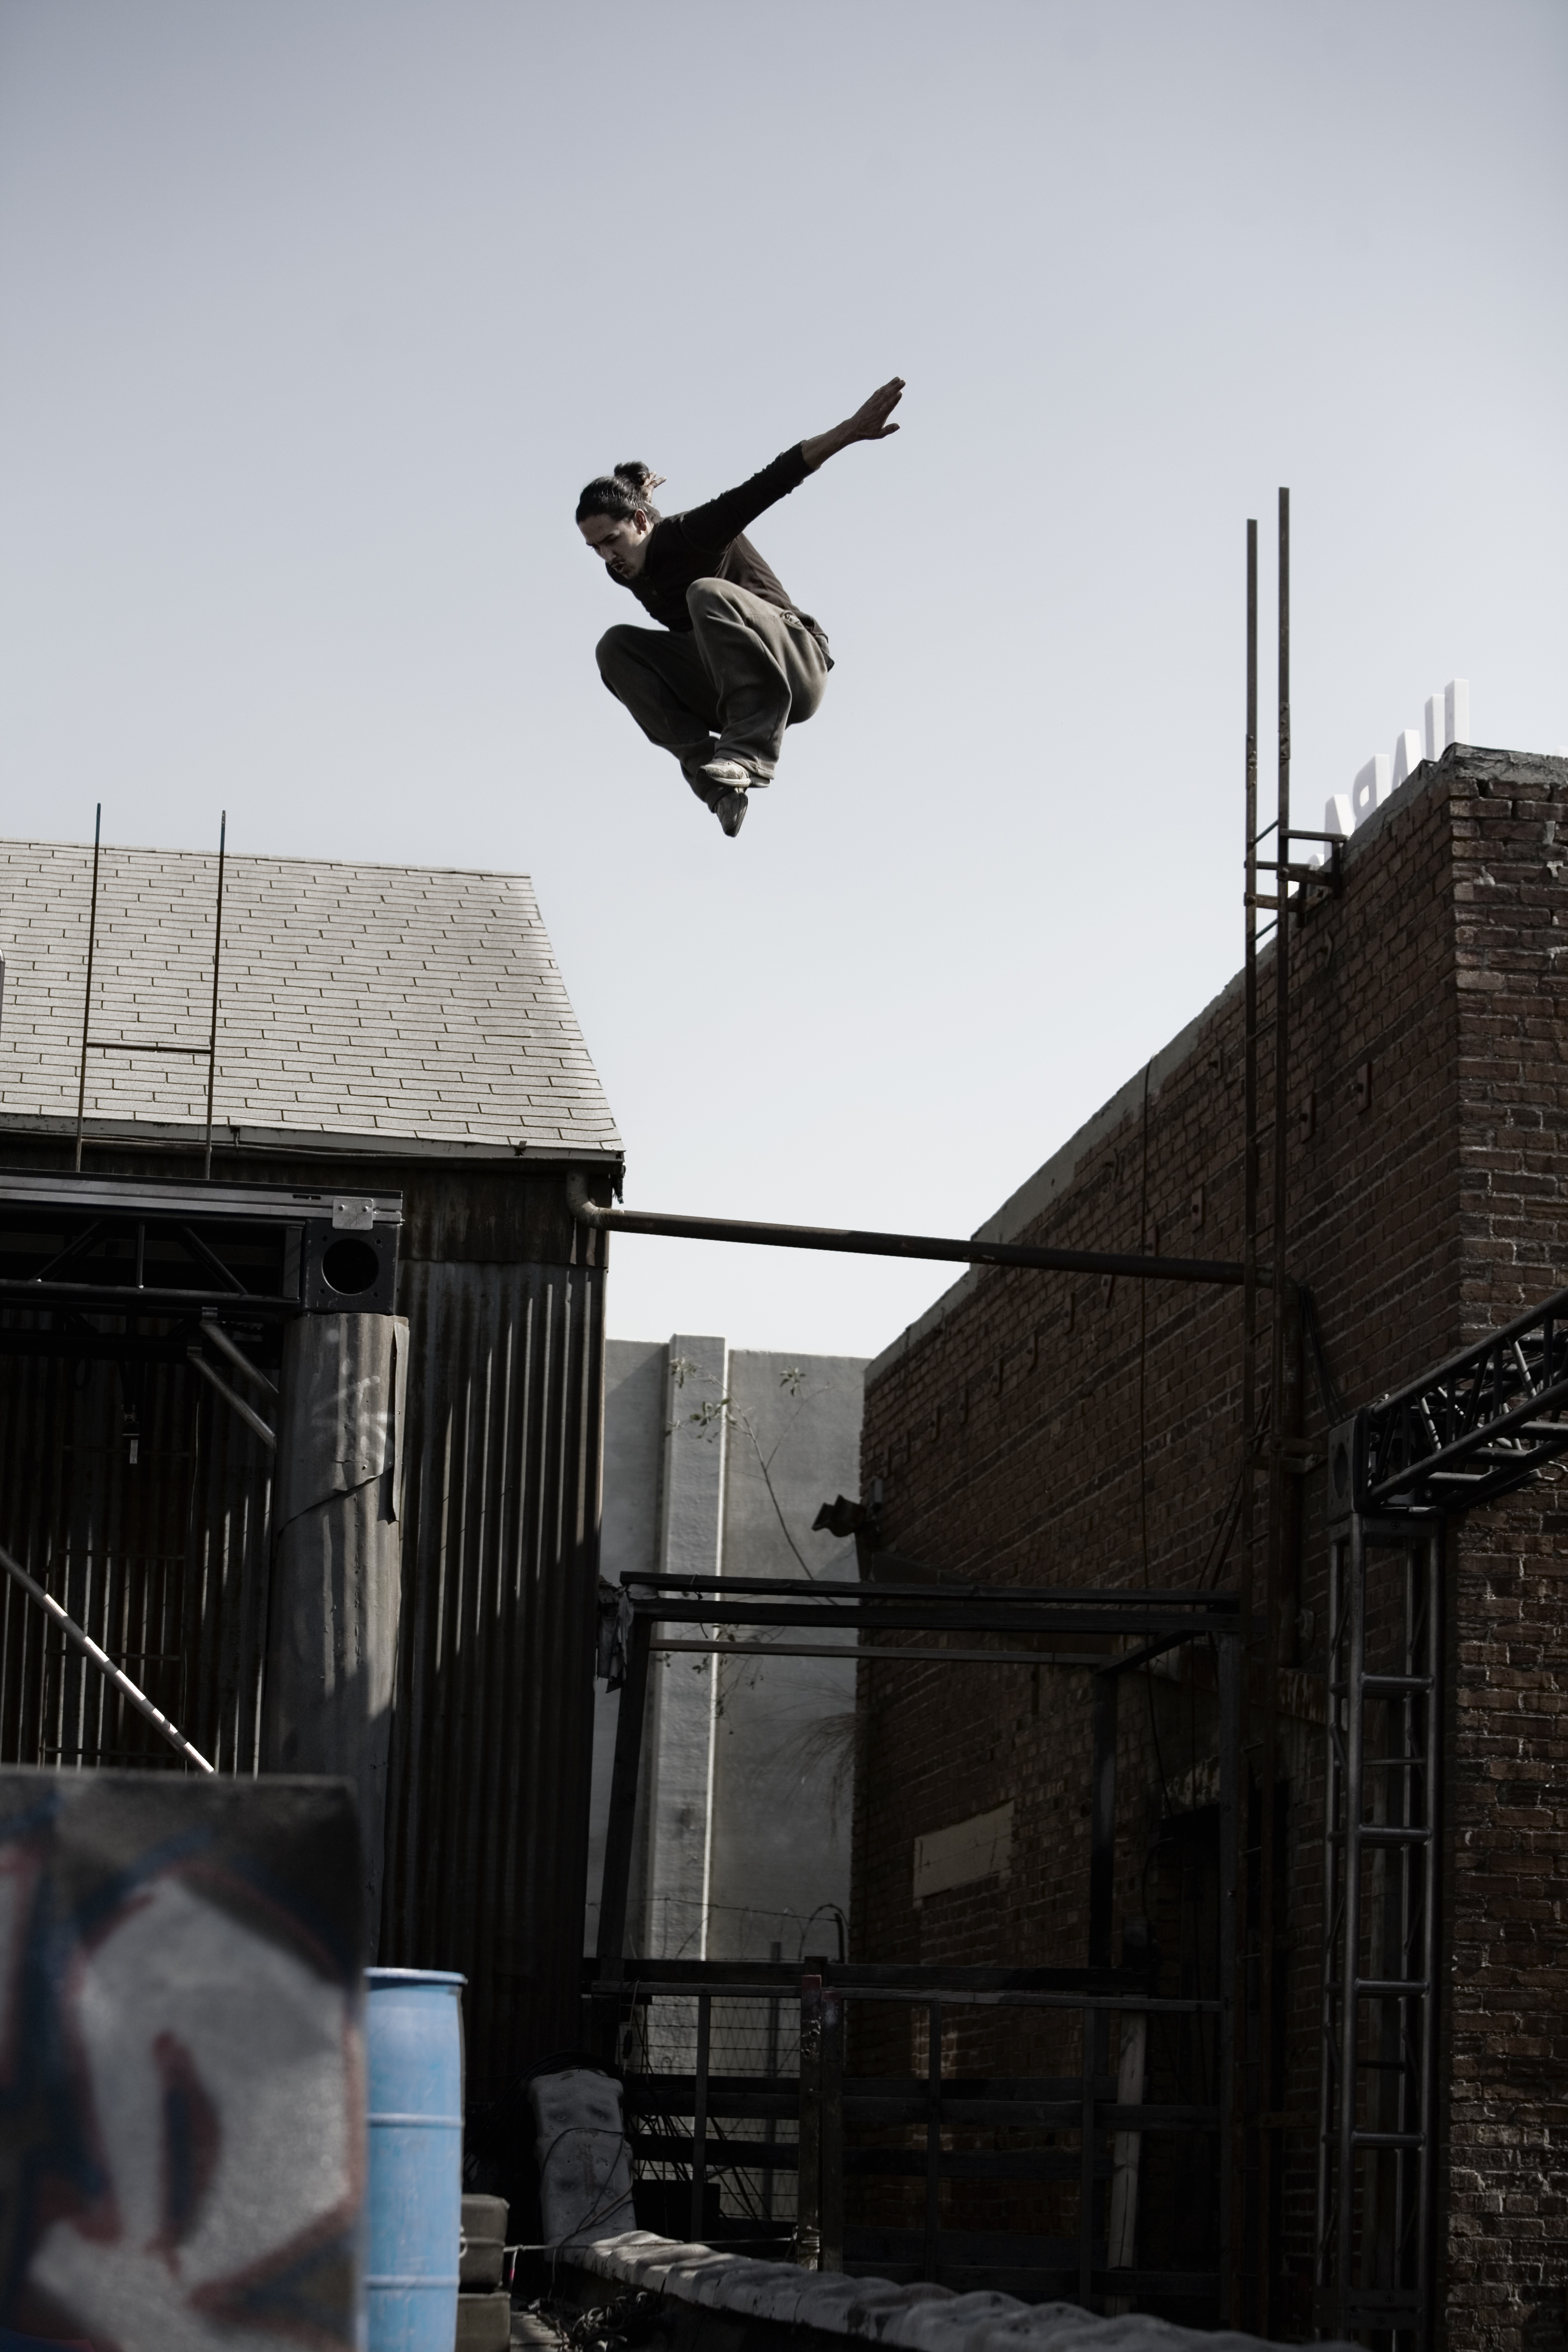 Mtv Meets Parkour To Defy Gravity On Thursday Nights